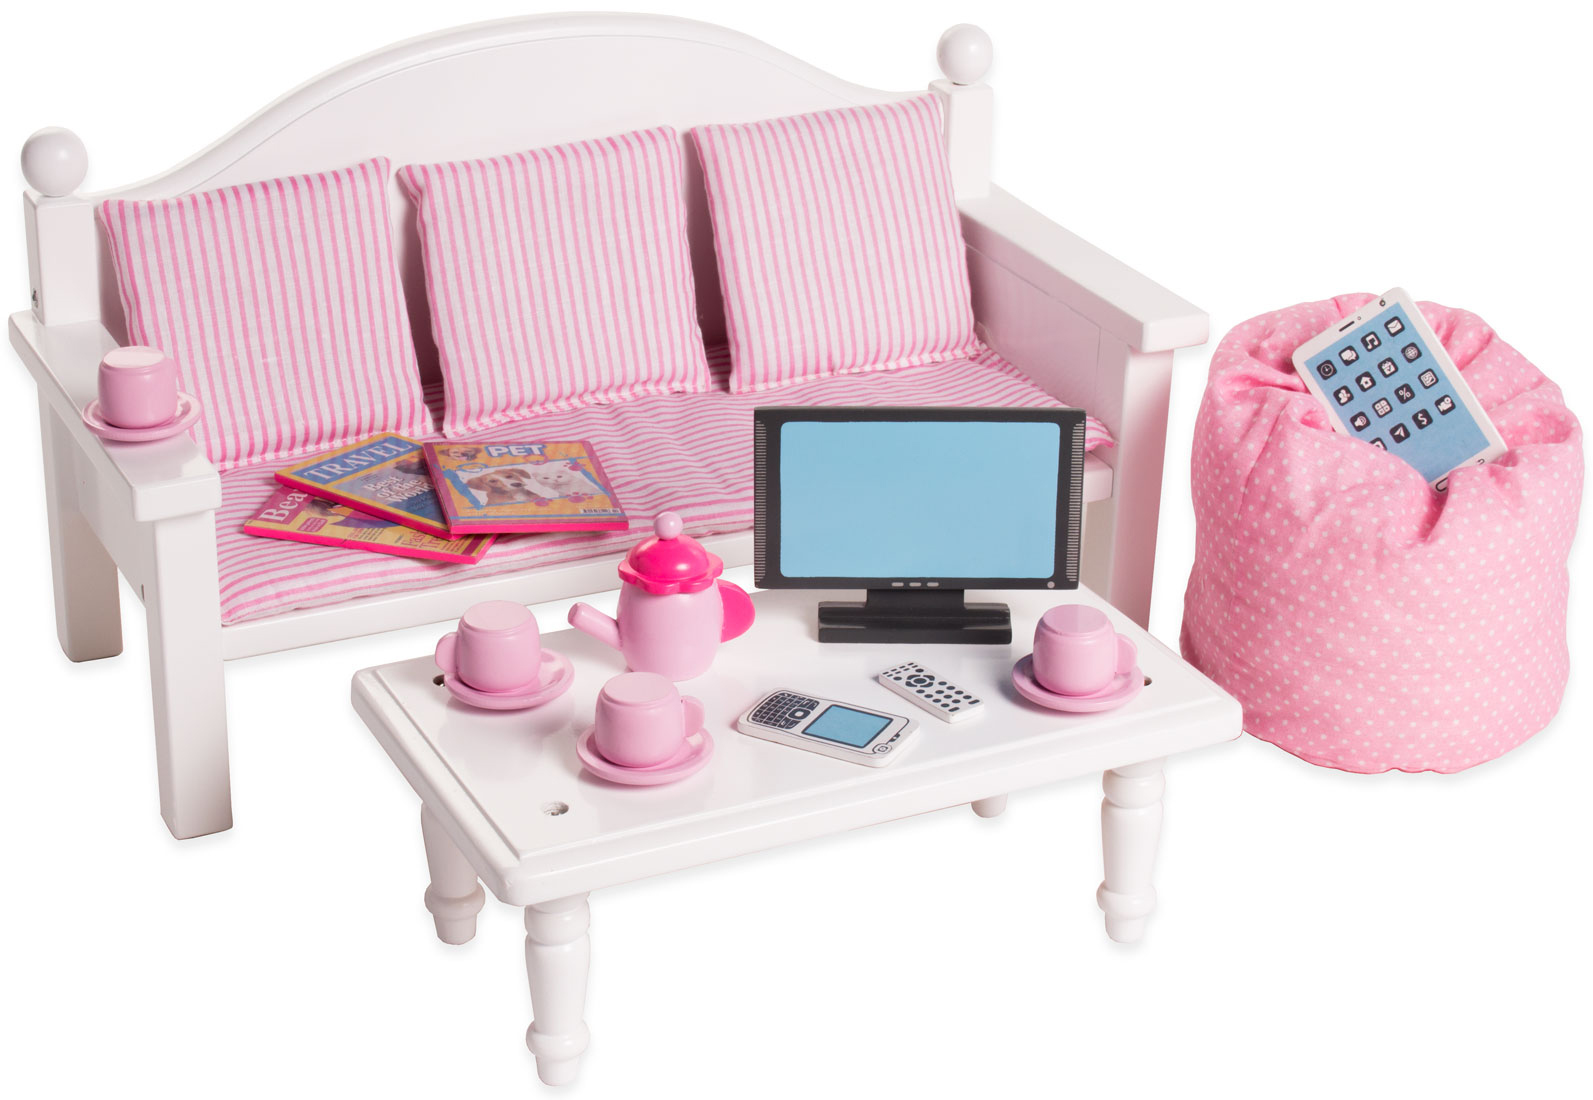 097ddd5399290 Eimmie 18 Inch Doll Furniture Sofa   Coffee Table with Accessories -  Walmart.com